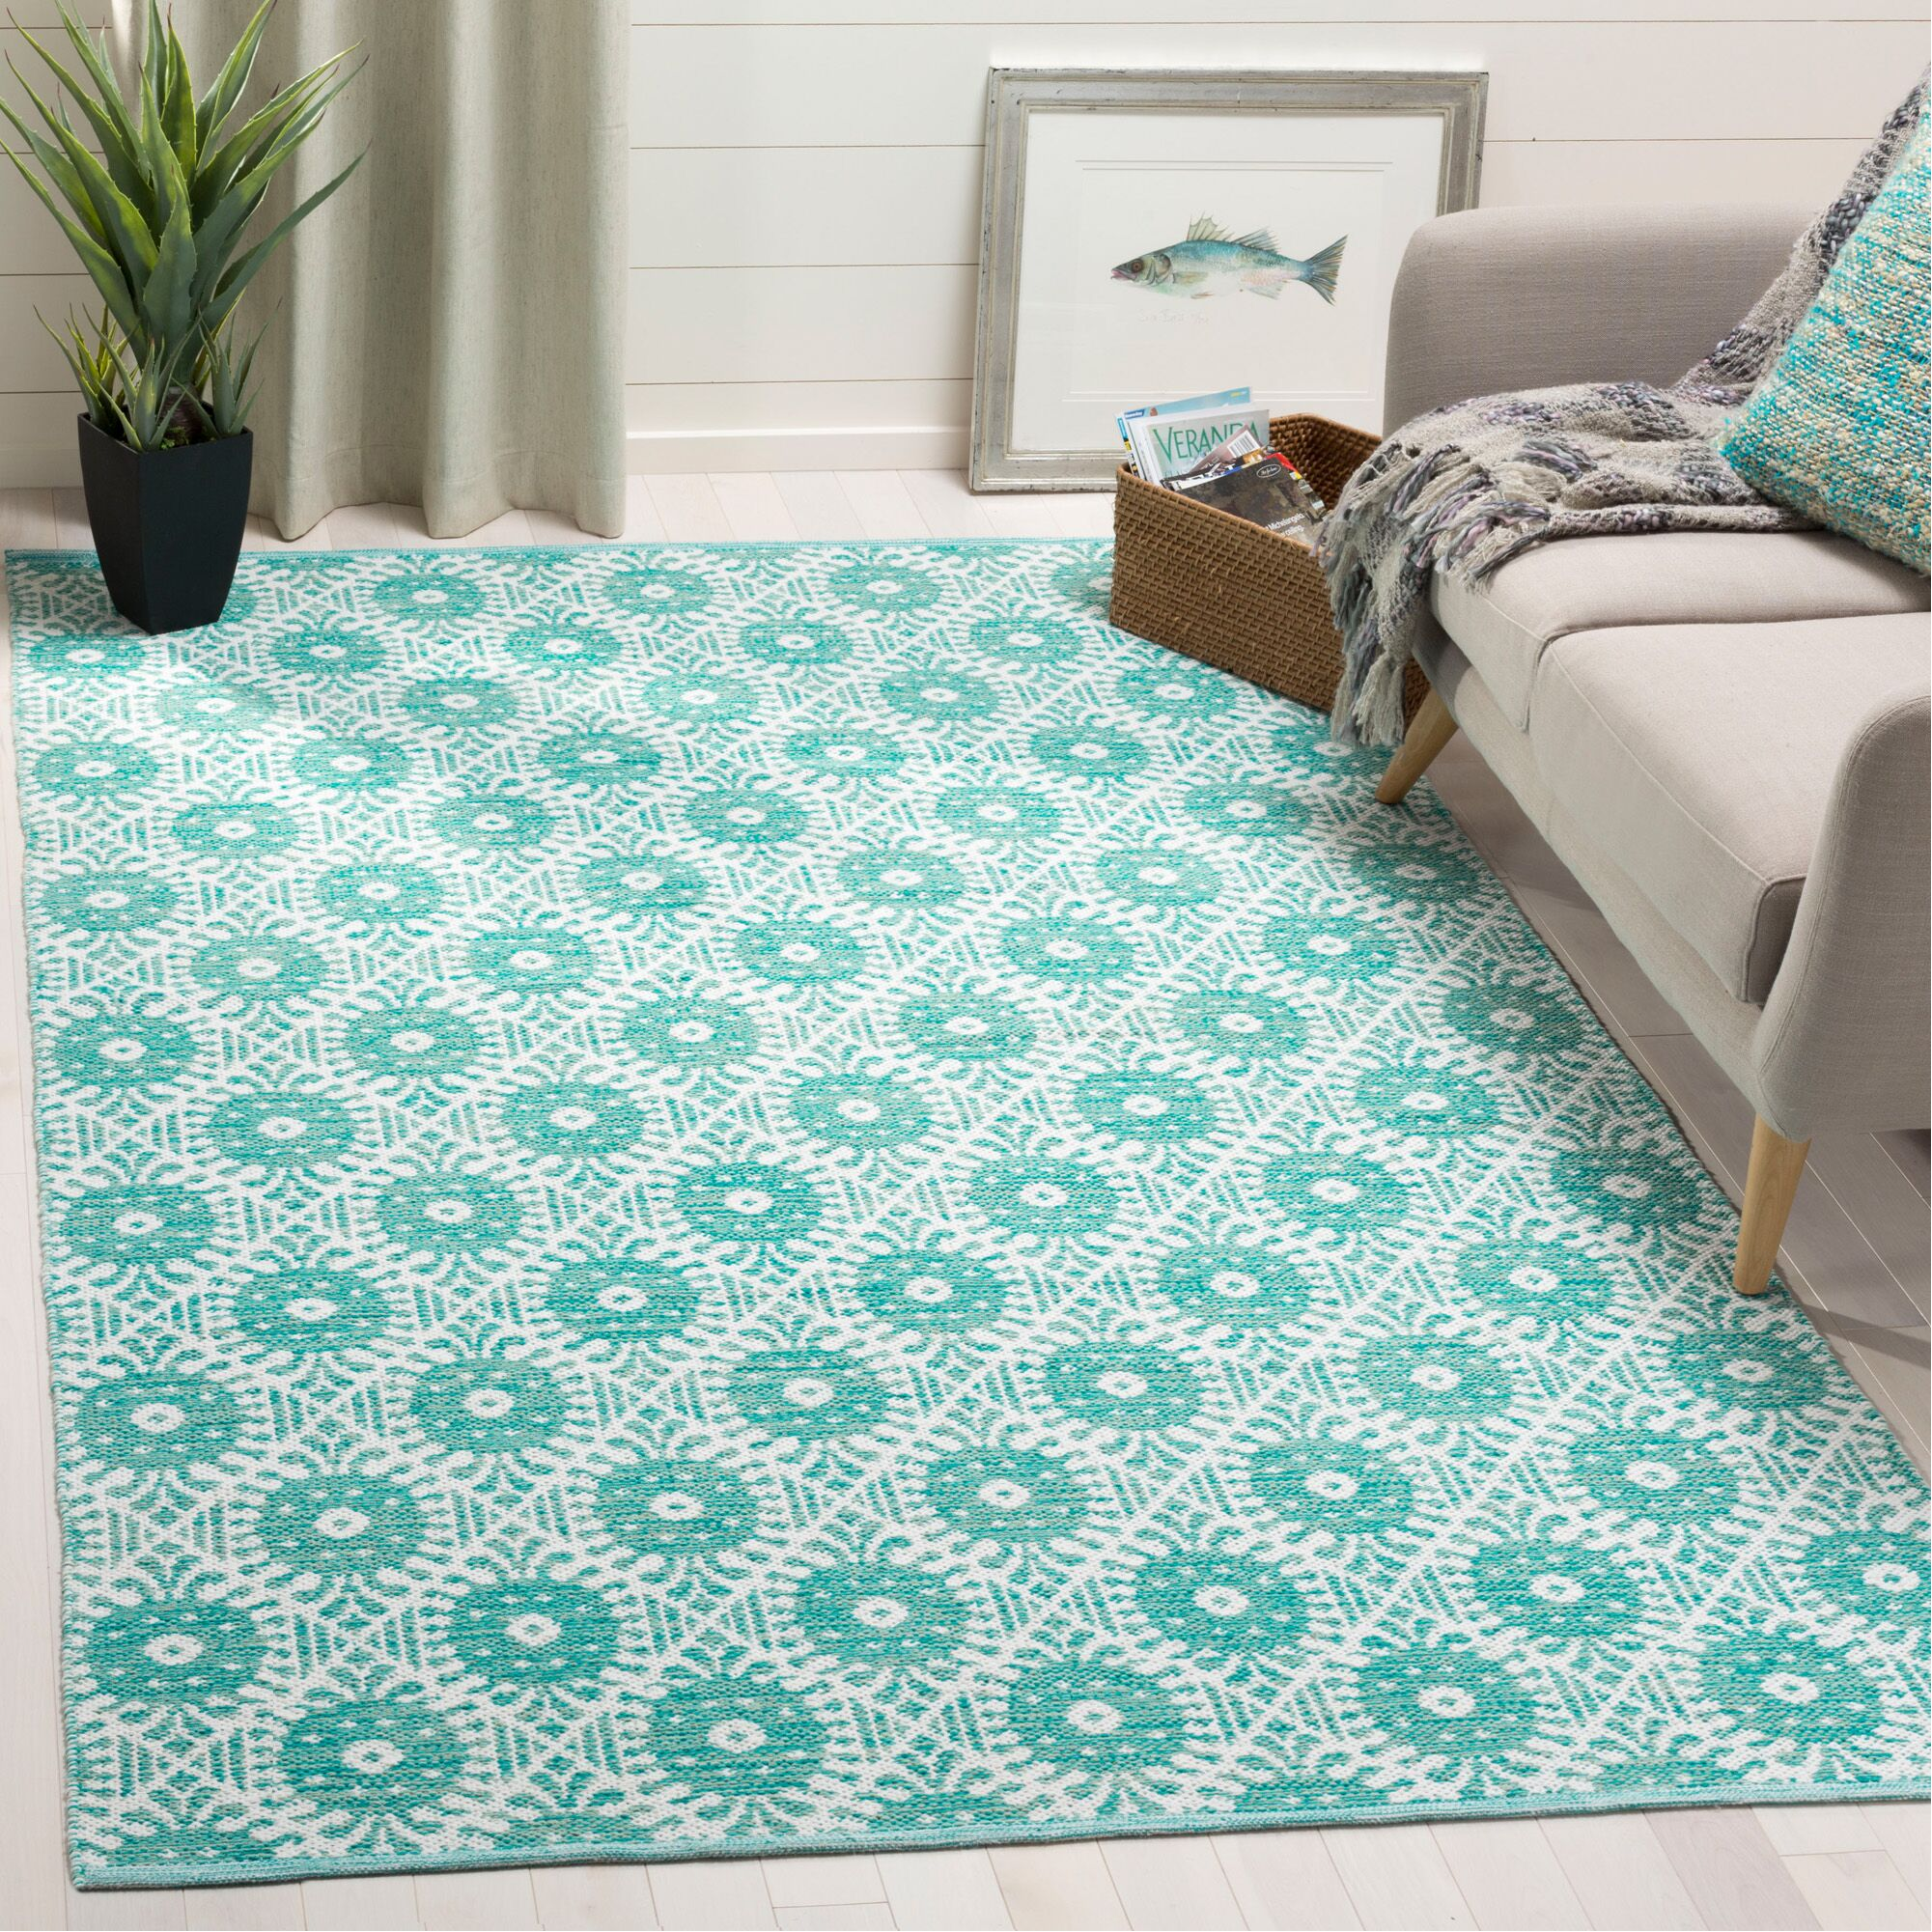 Clemence Hand-Woven Aqua/Ivory Area Rug Rug Size: Rectangle 5' x 8'